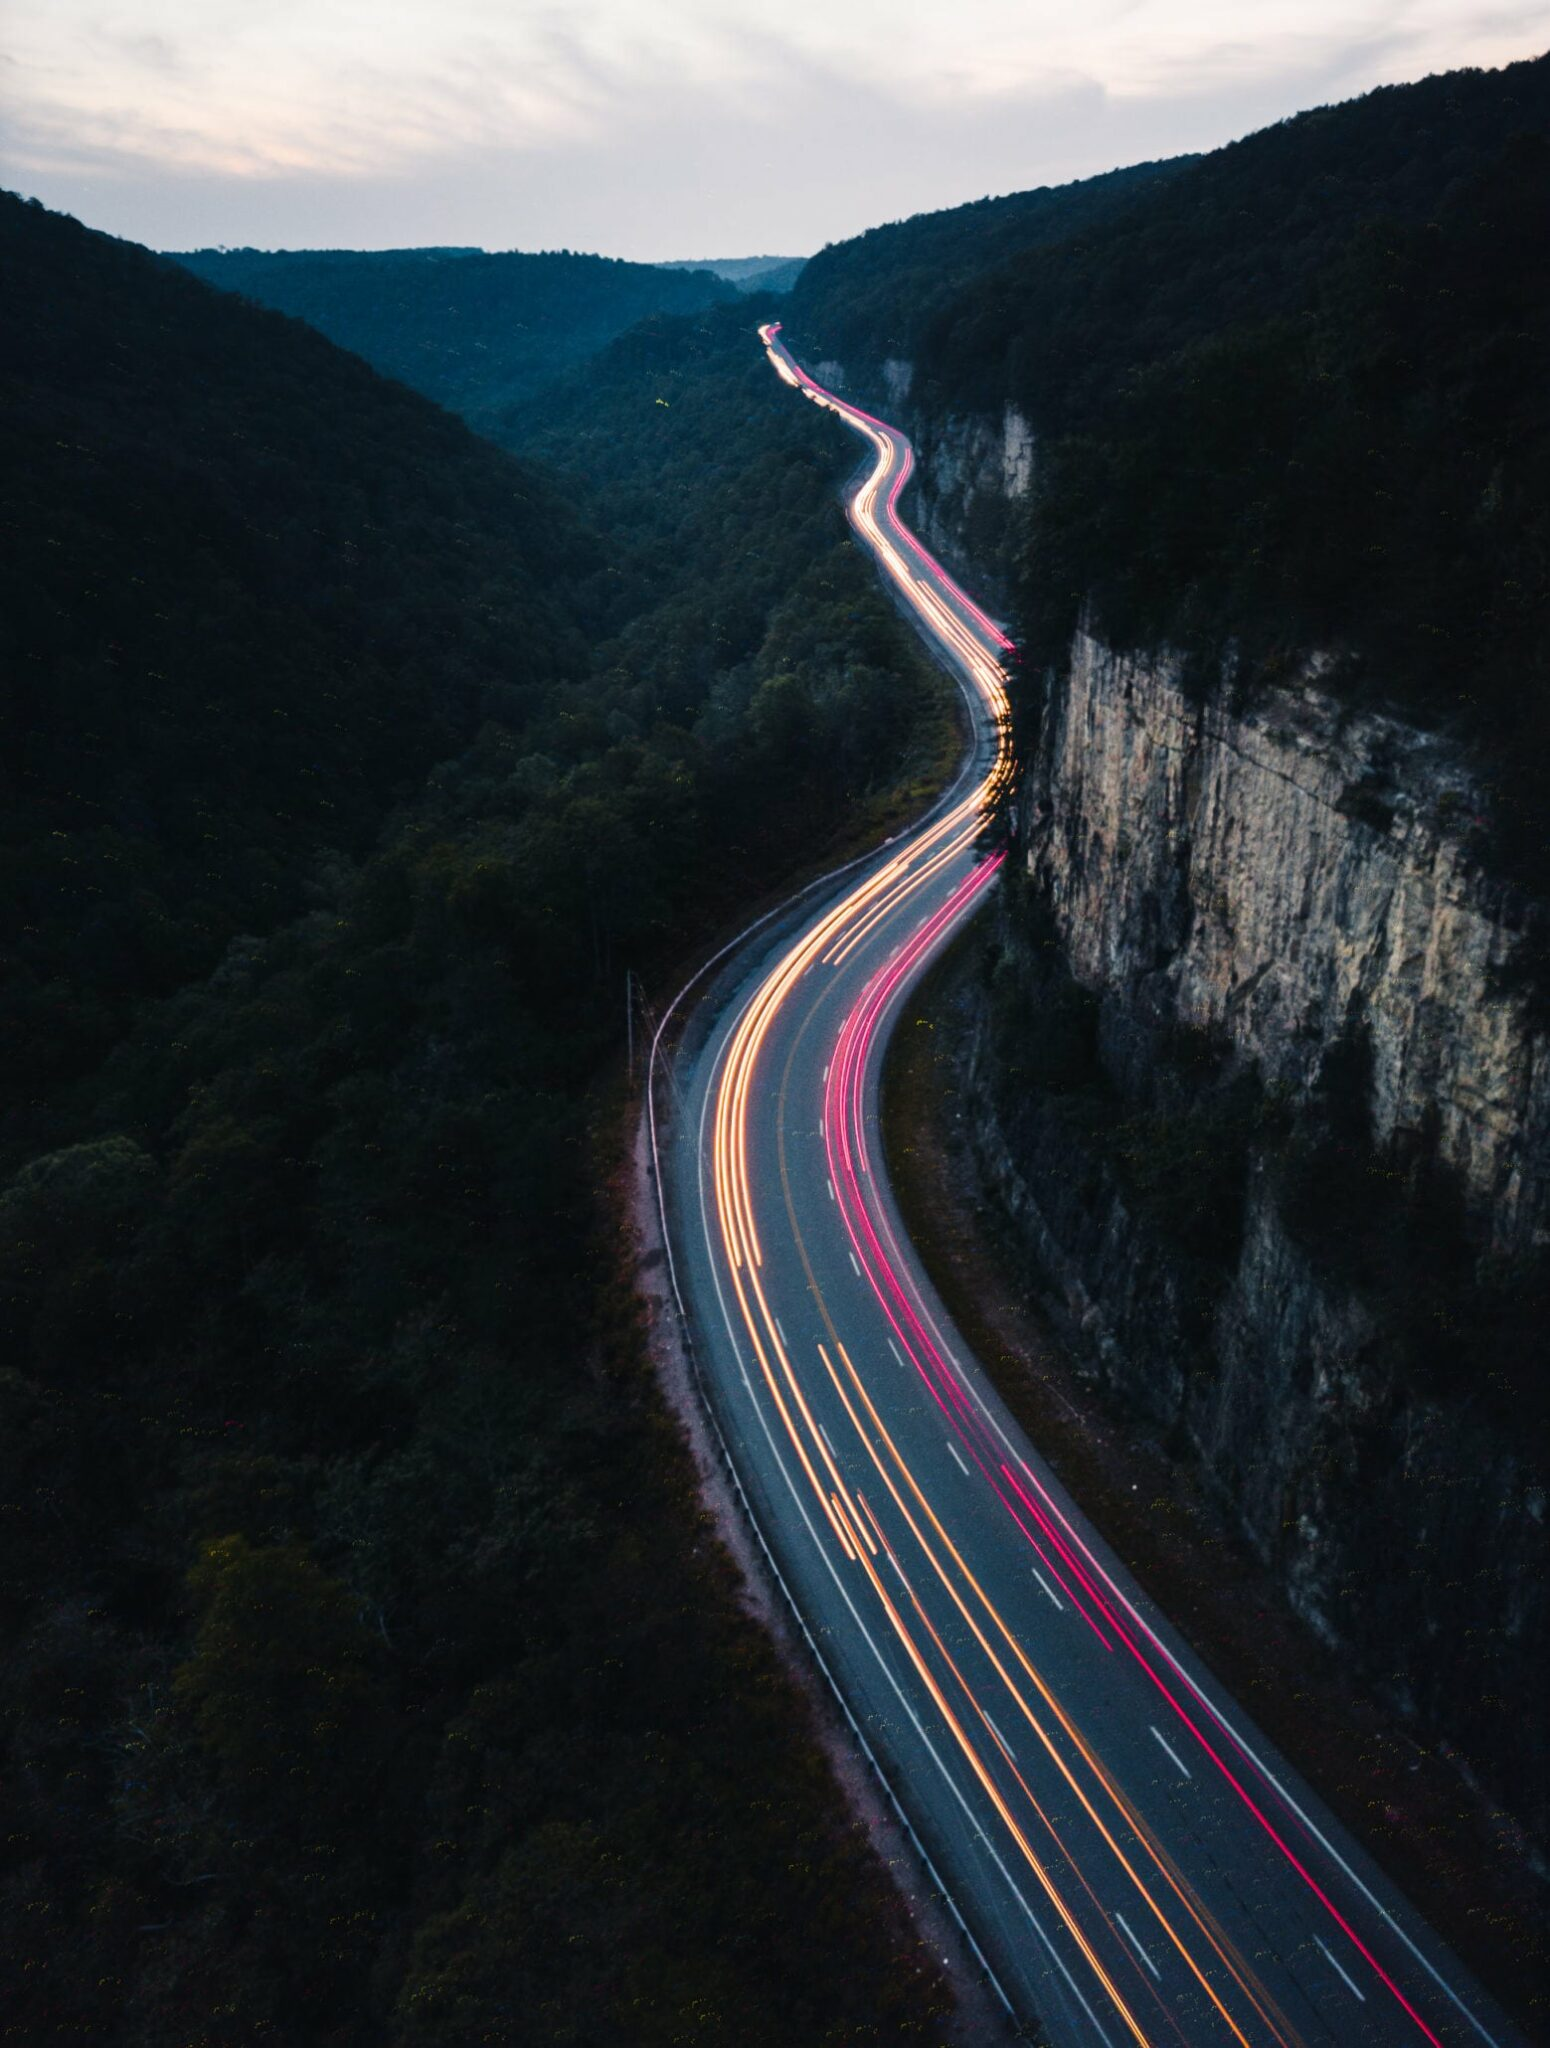 Normalization highway